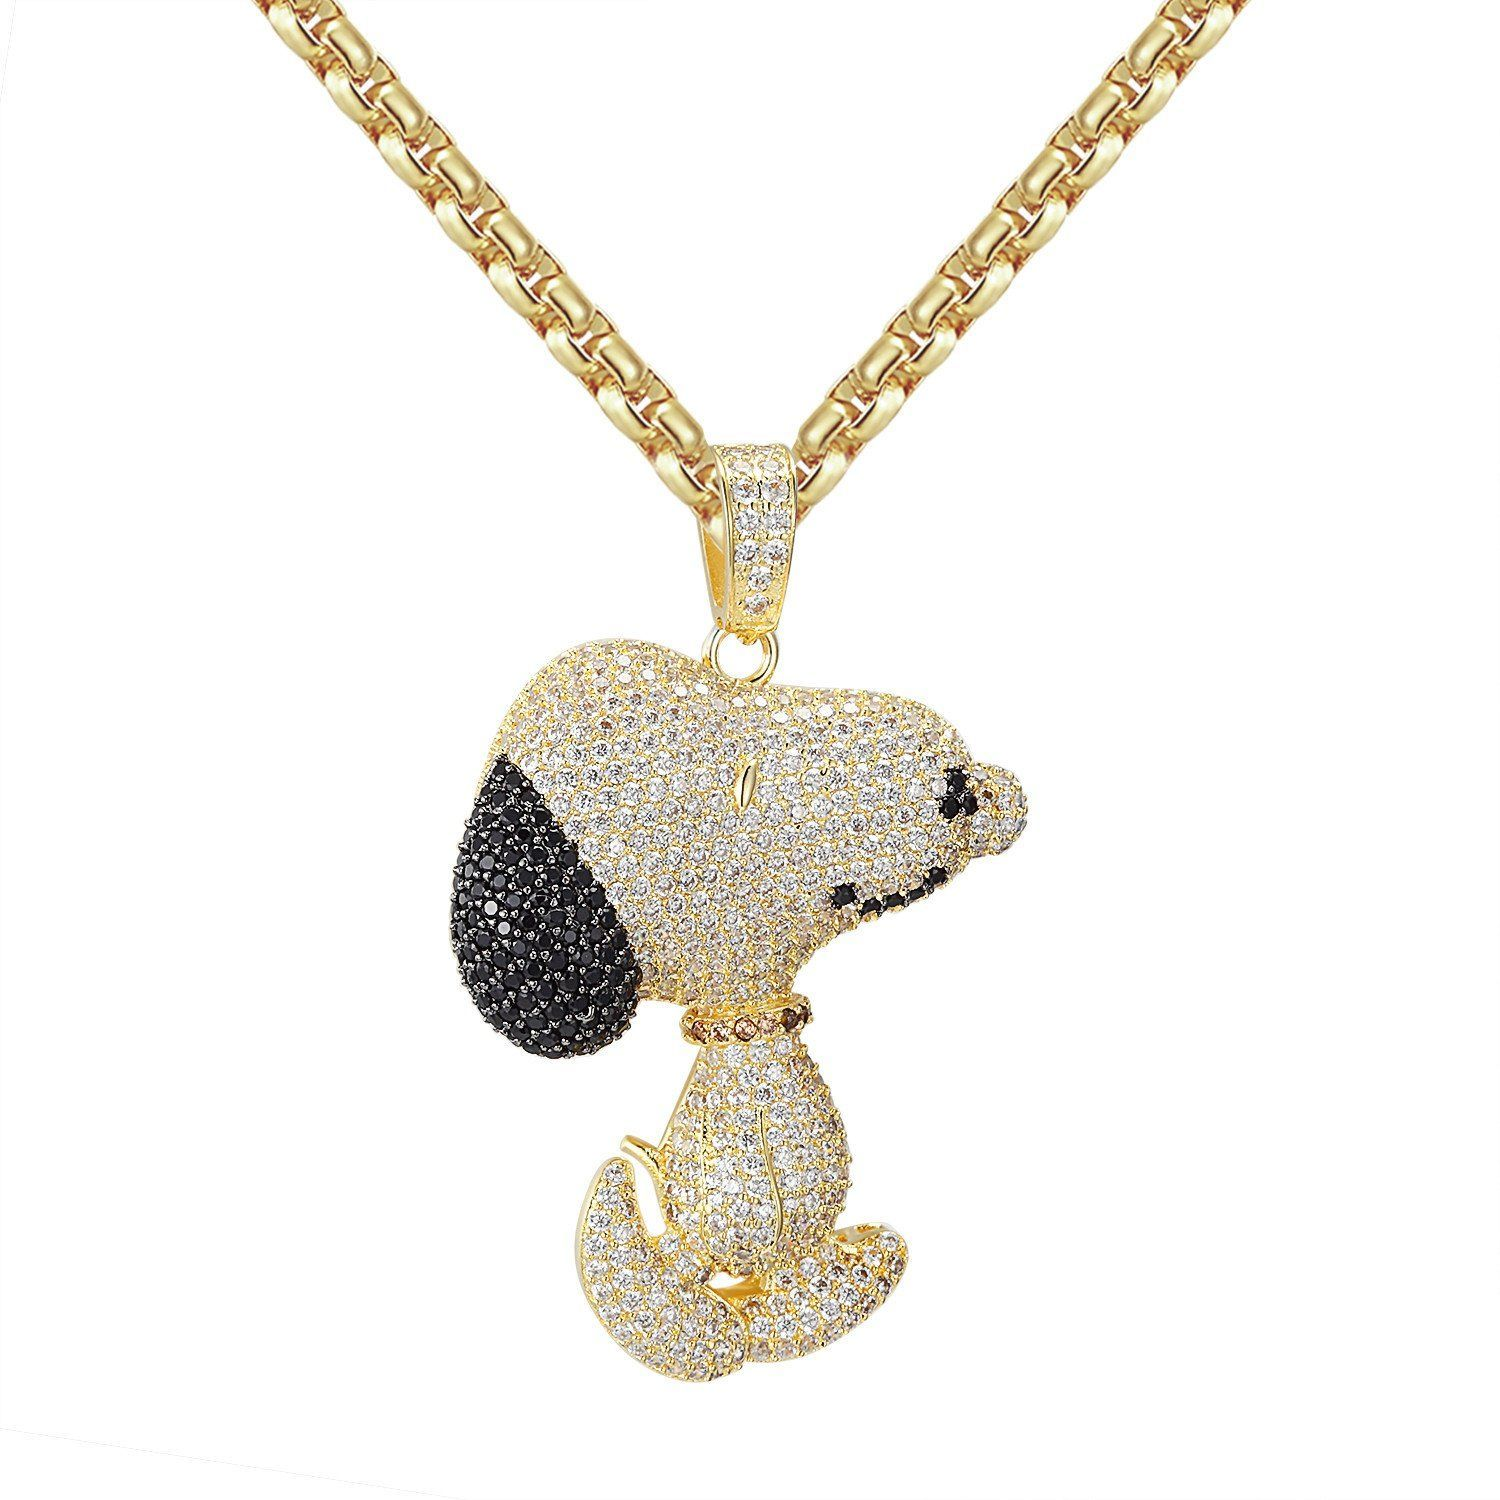 7d4d581e992f7 Custom Iced Out 14k Gold Finish Black Snoopy Dog Pendant with 24 ...